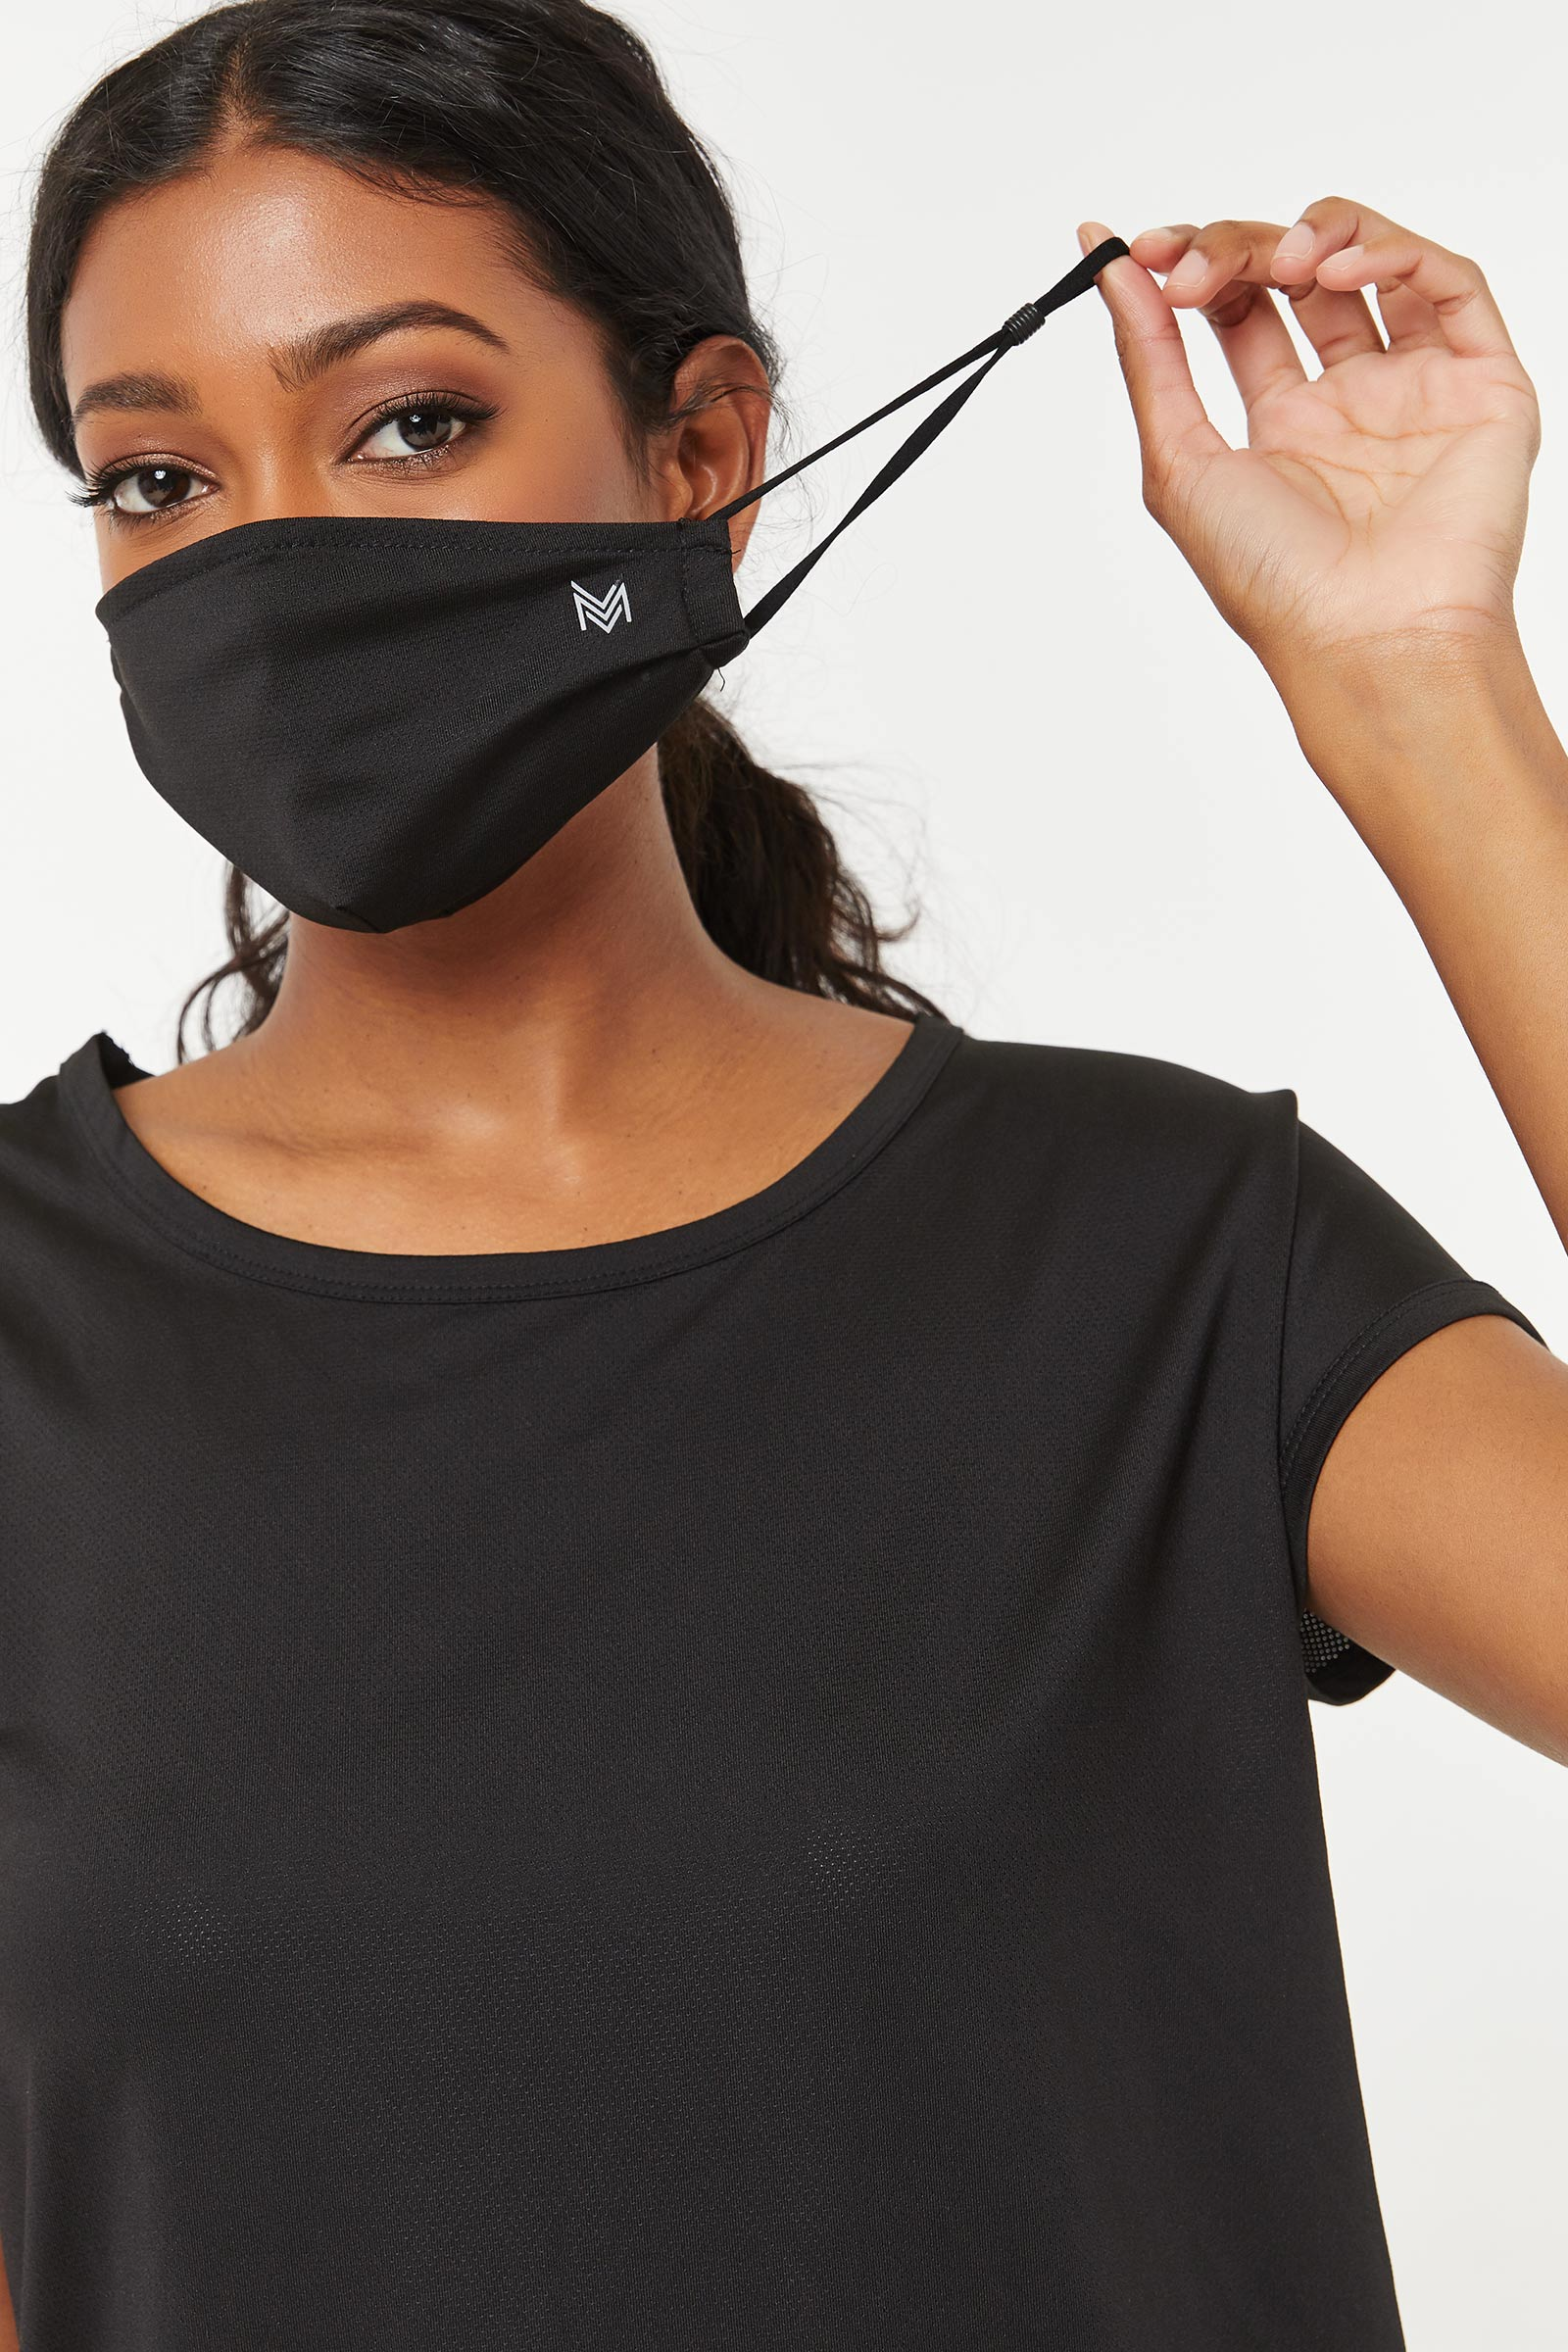 MOVE Reusable Face Covering